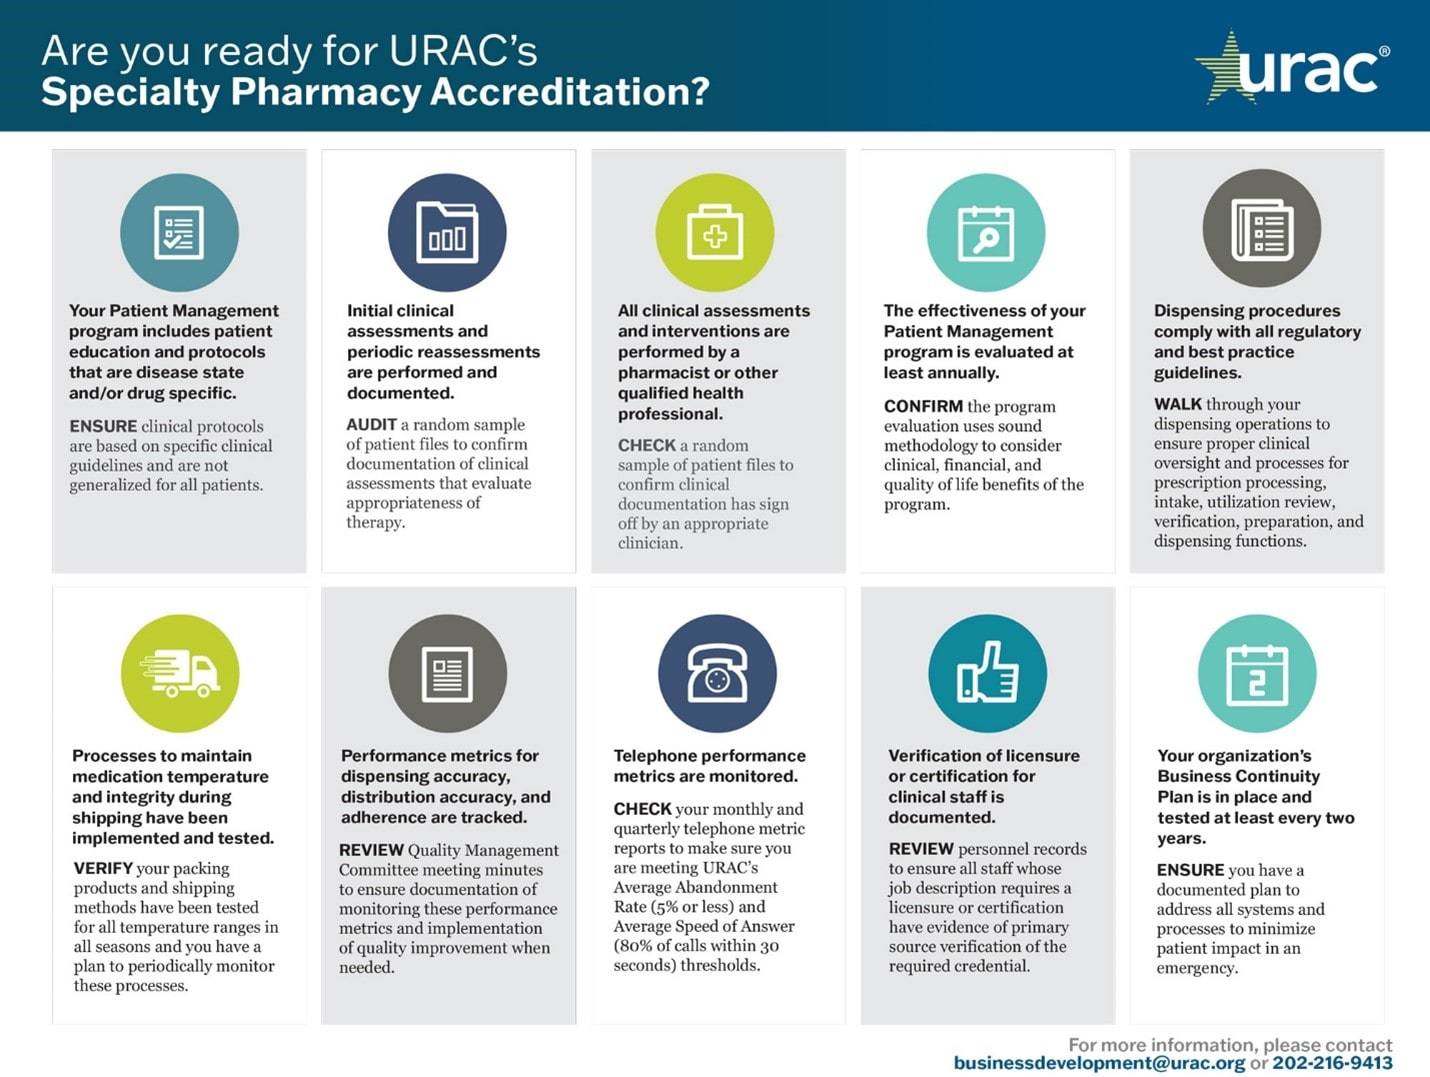 URAC Specialty Pharmacy Accreditation